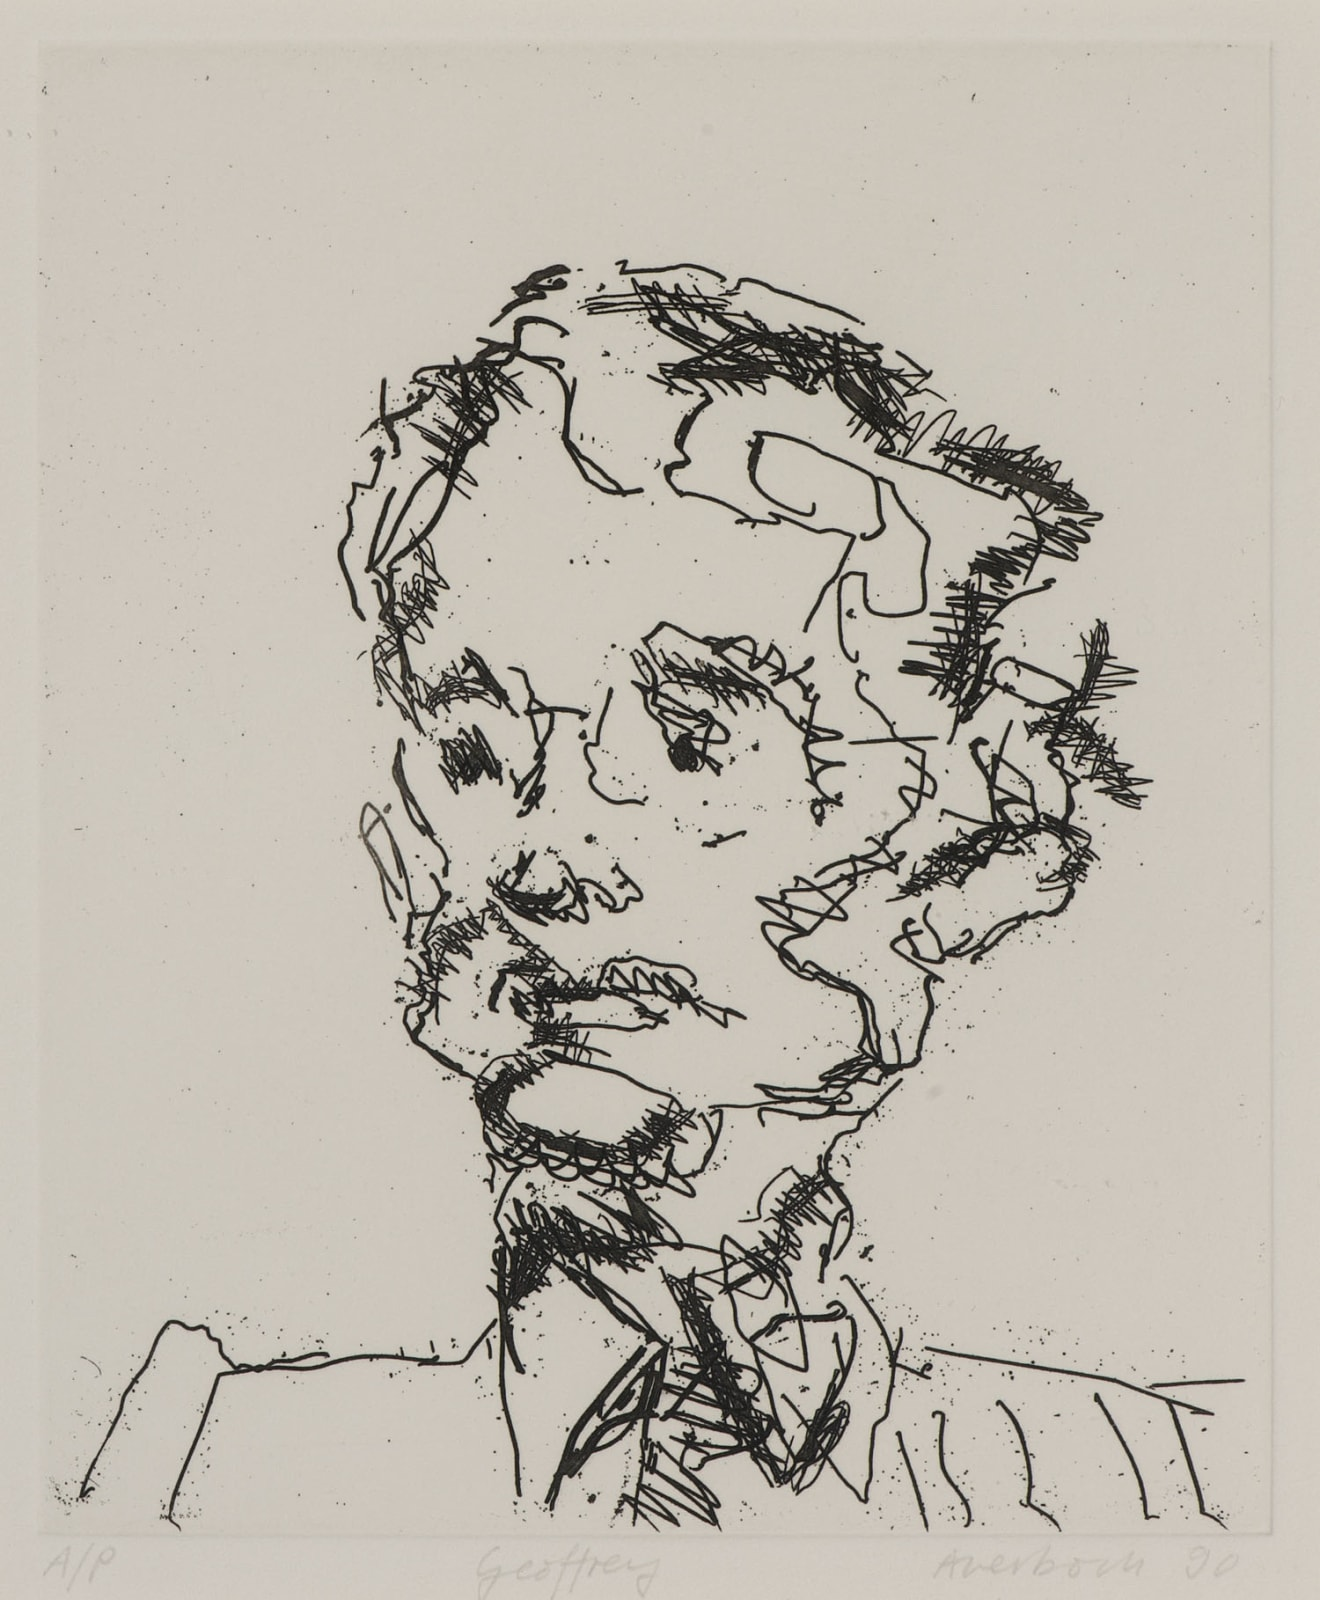 Frank Auerbach (1931-) Geoffrey 1989 Etching, printed on Somerset white paper Artist's proof outside the published edition of 50 19.5 x 16.5 cm Ben Uri Collection © Frank Auerbach, courtesy of Marlborough Fine Art To see and discover more about this artist click here